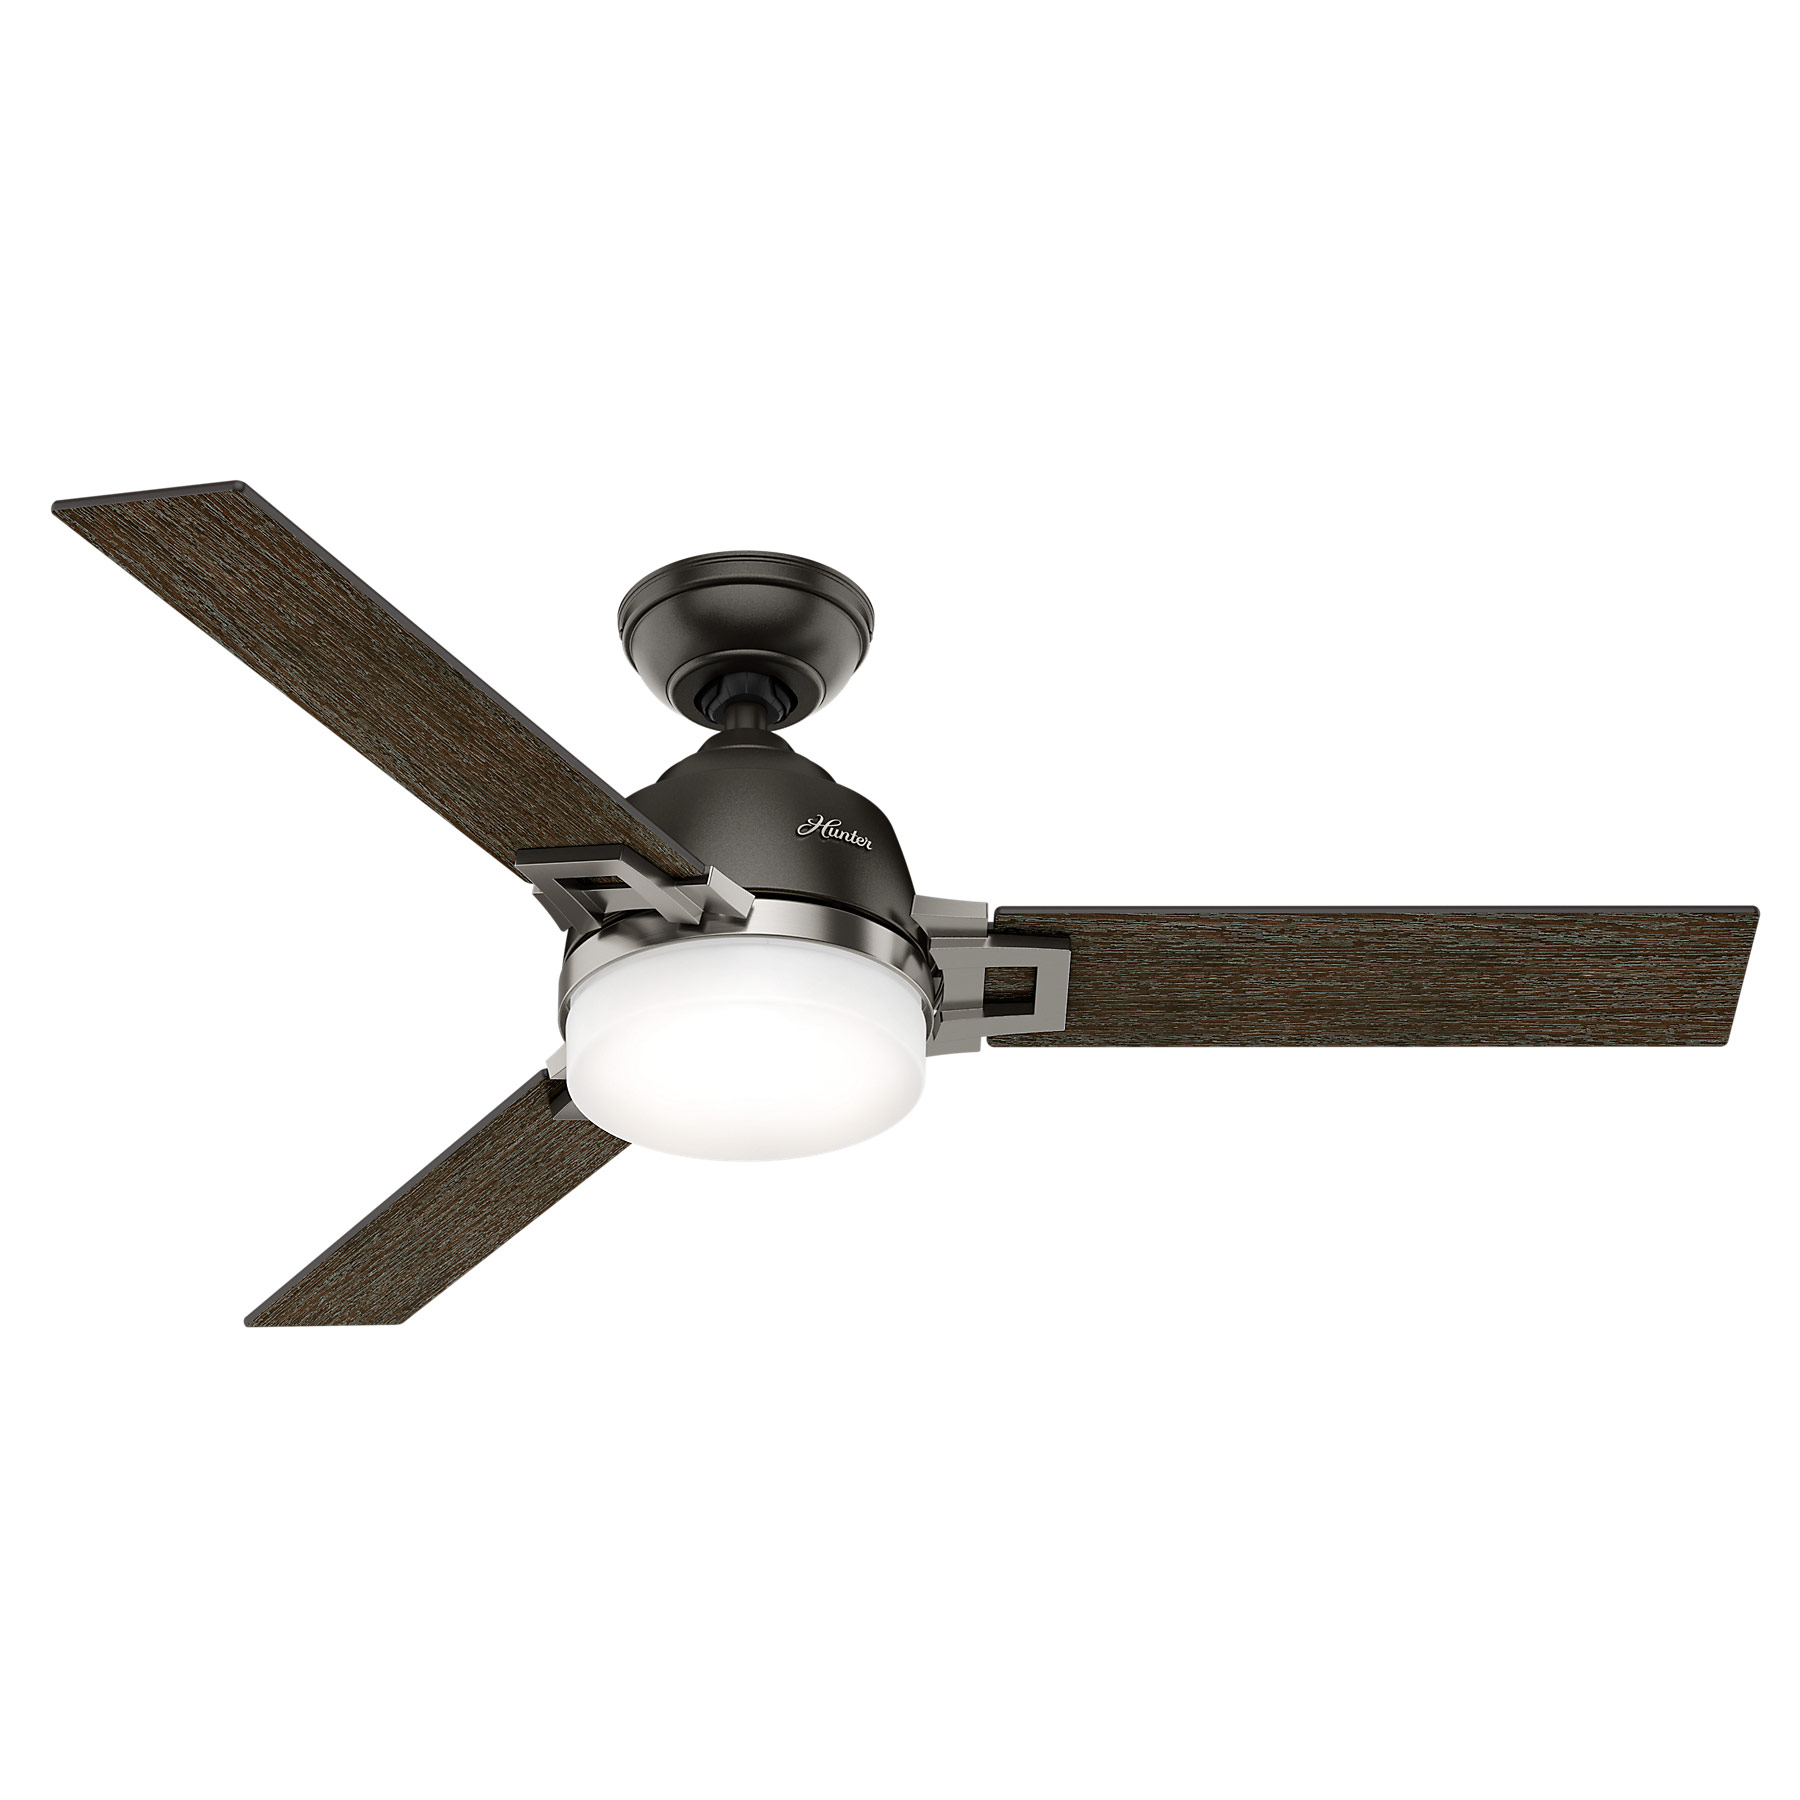 finish cfm noveau ceiling hunter brass burnished capitol fan frosted inch image magnifying art blade clear item in glass fans and shown